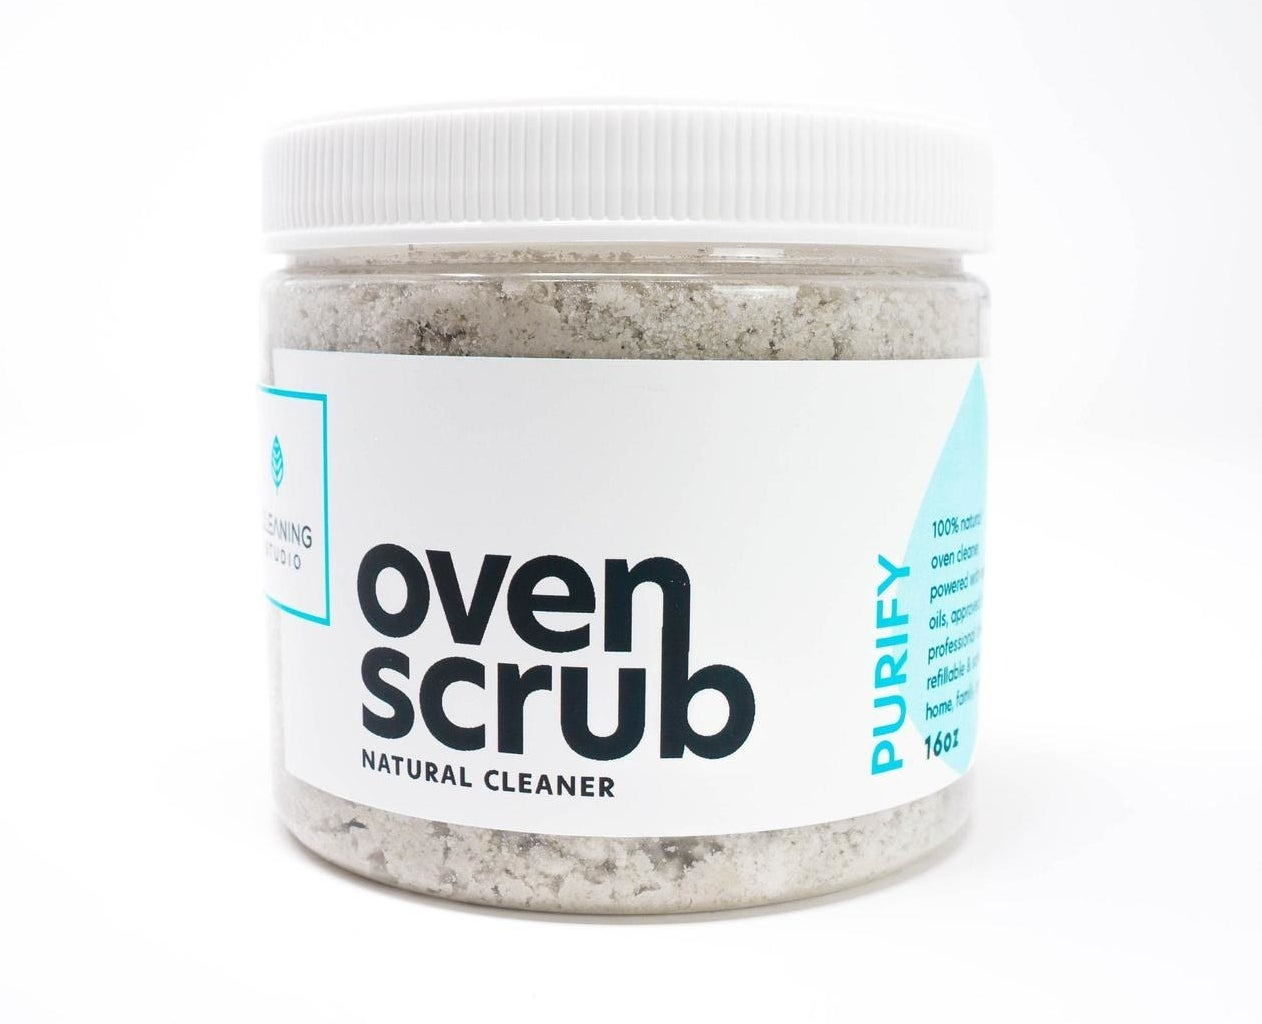 clear jar of an oven scrub natural cleaner